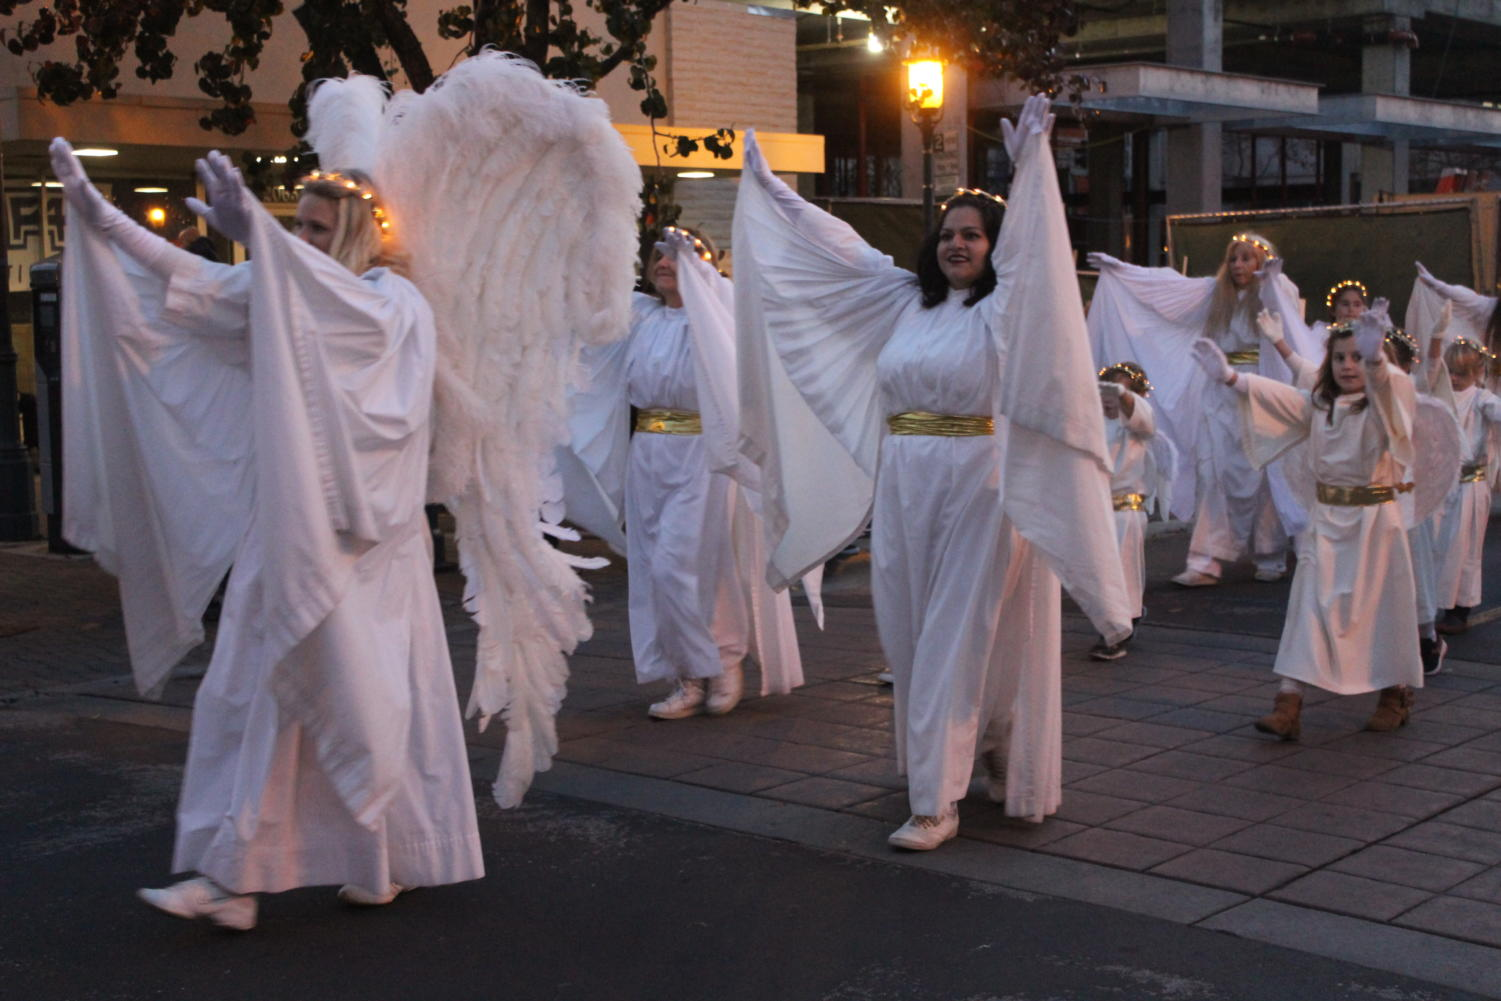 Angels+walk+through+the+parade+from+Bethlehem+A.D.%2C+a+group+that+recreates+and+performs+scenes+from+the+Bible.